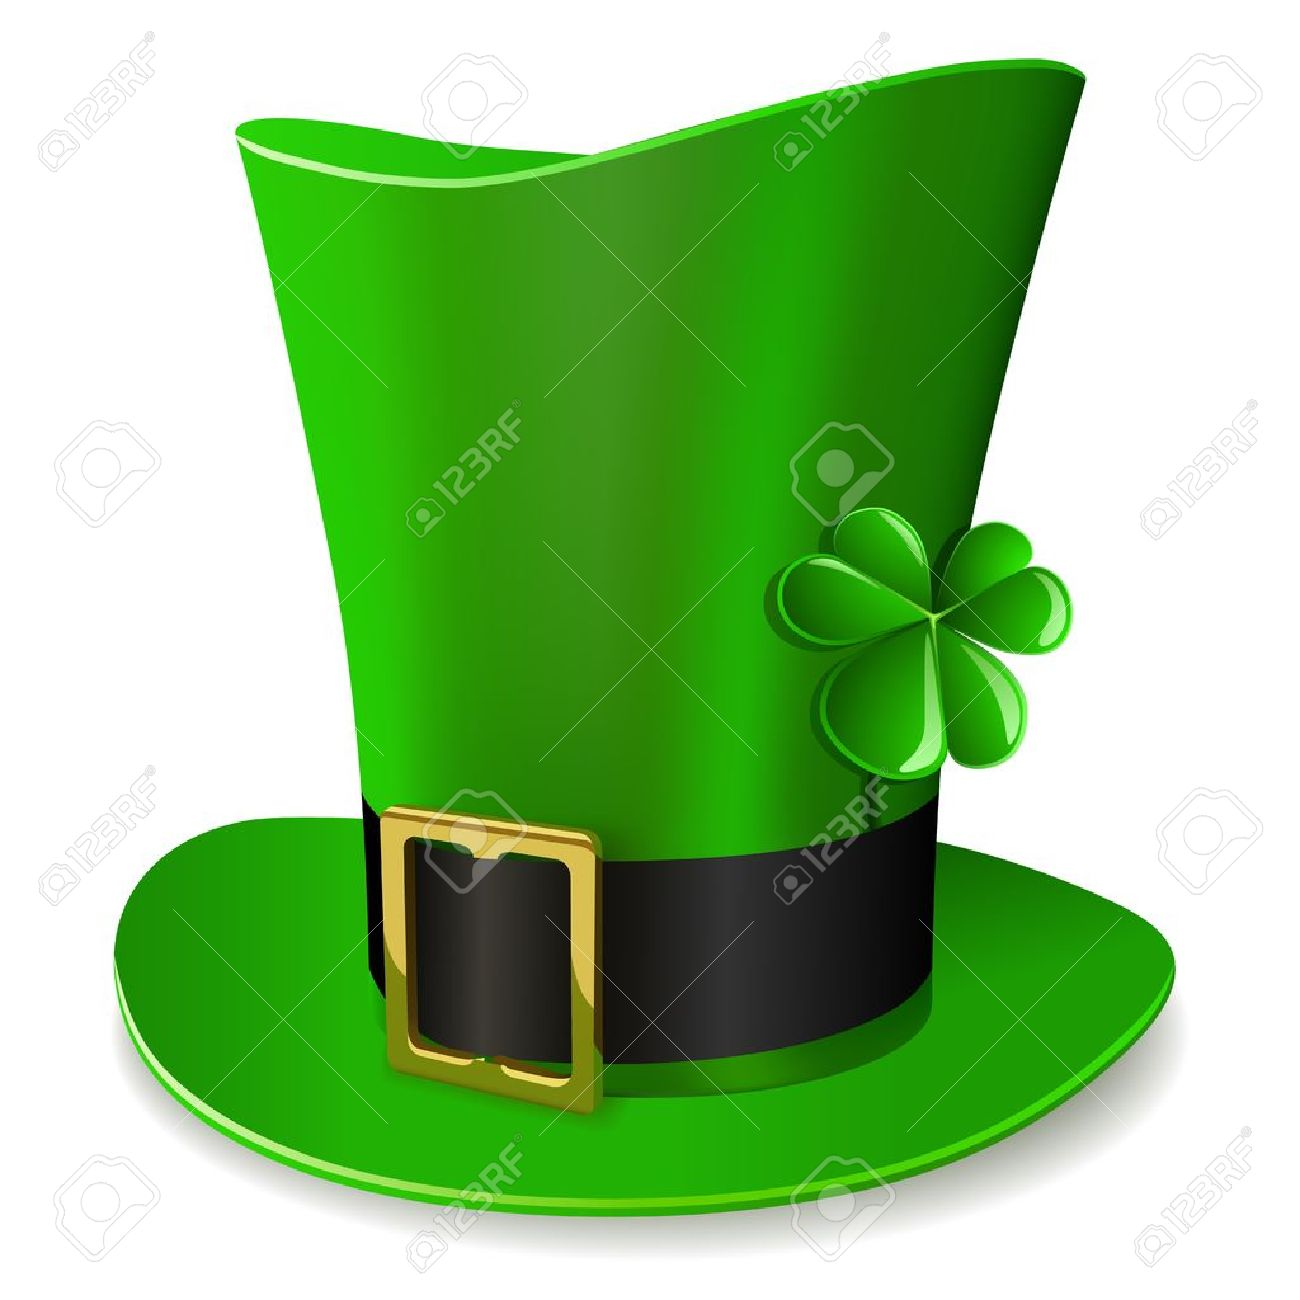 leprechaun hat st patricks day symbol royalty free cliparts